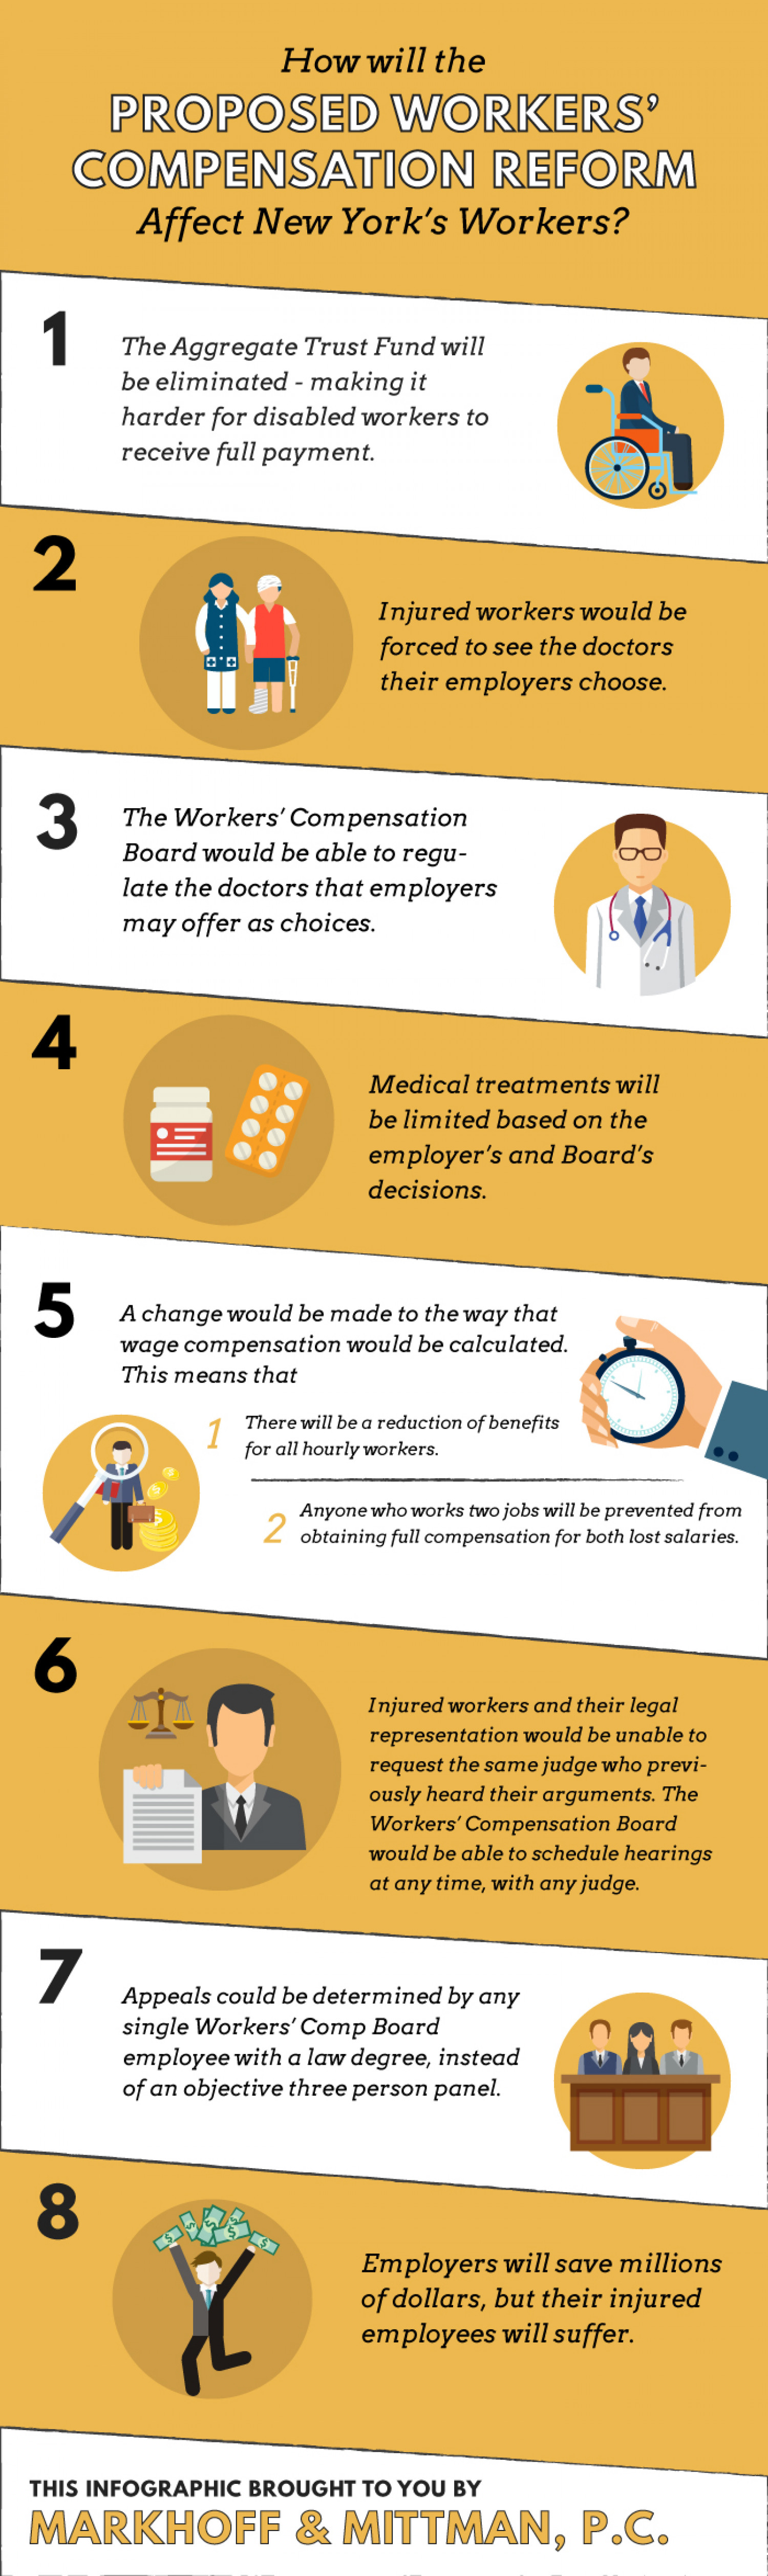 How Will The Proposed Worker's Compensation Reform Affect New York's Workers? Infographic